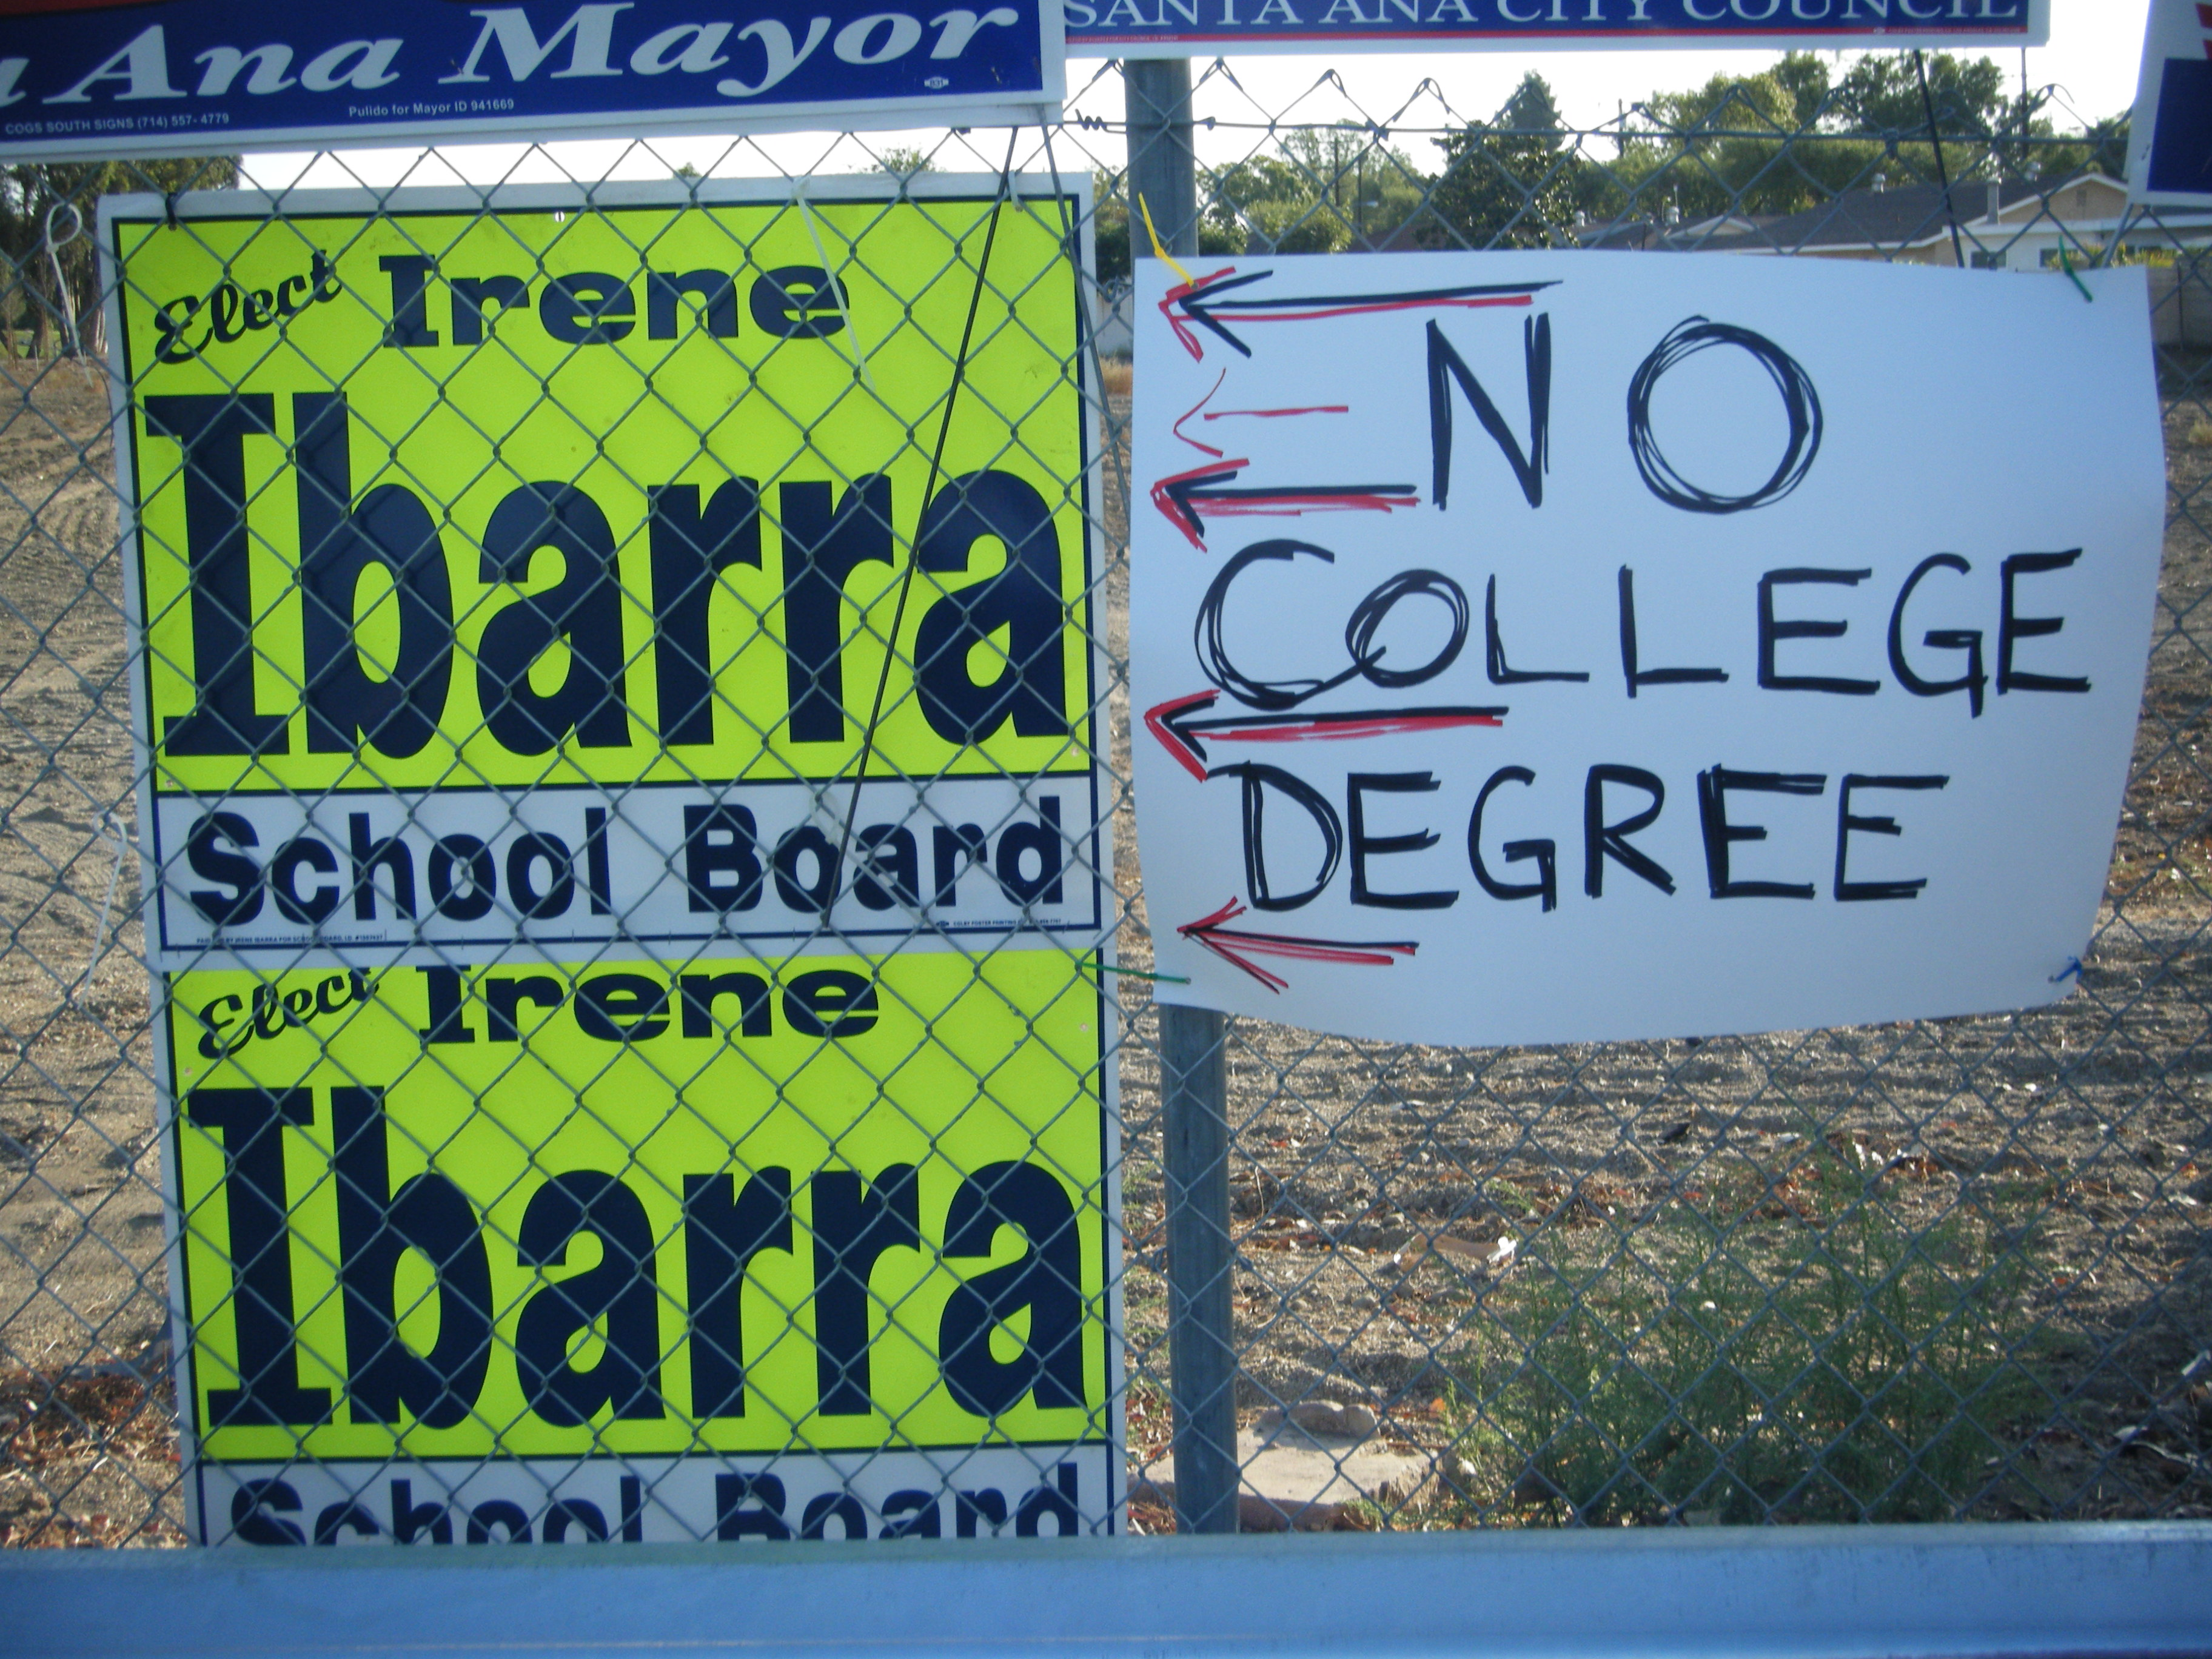 SAUSD School Board candidate Gregory Barraza and his wife were caught red-handed today affixing the handmade sign seen in the picture above to a fence, next to Irene Ibarra's campaign […]